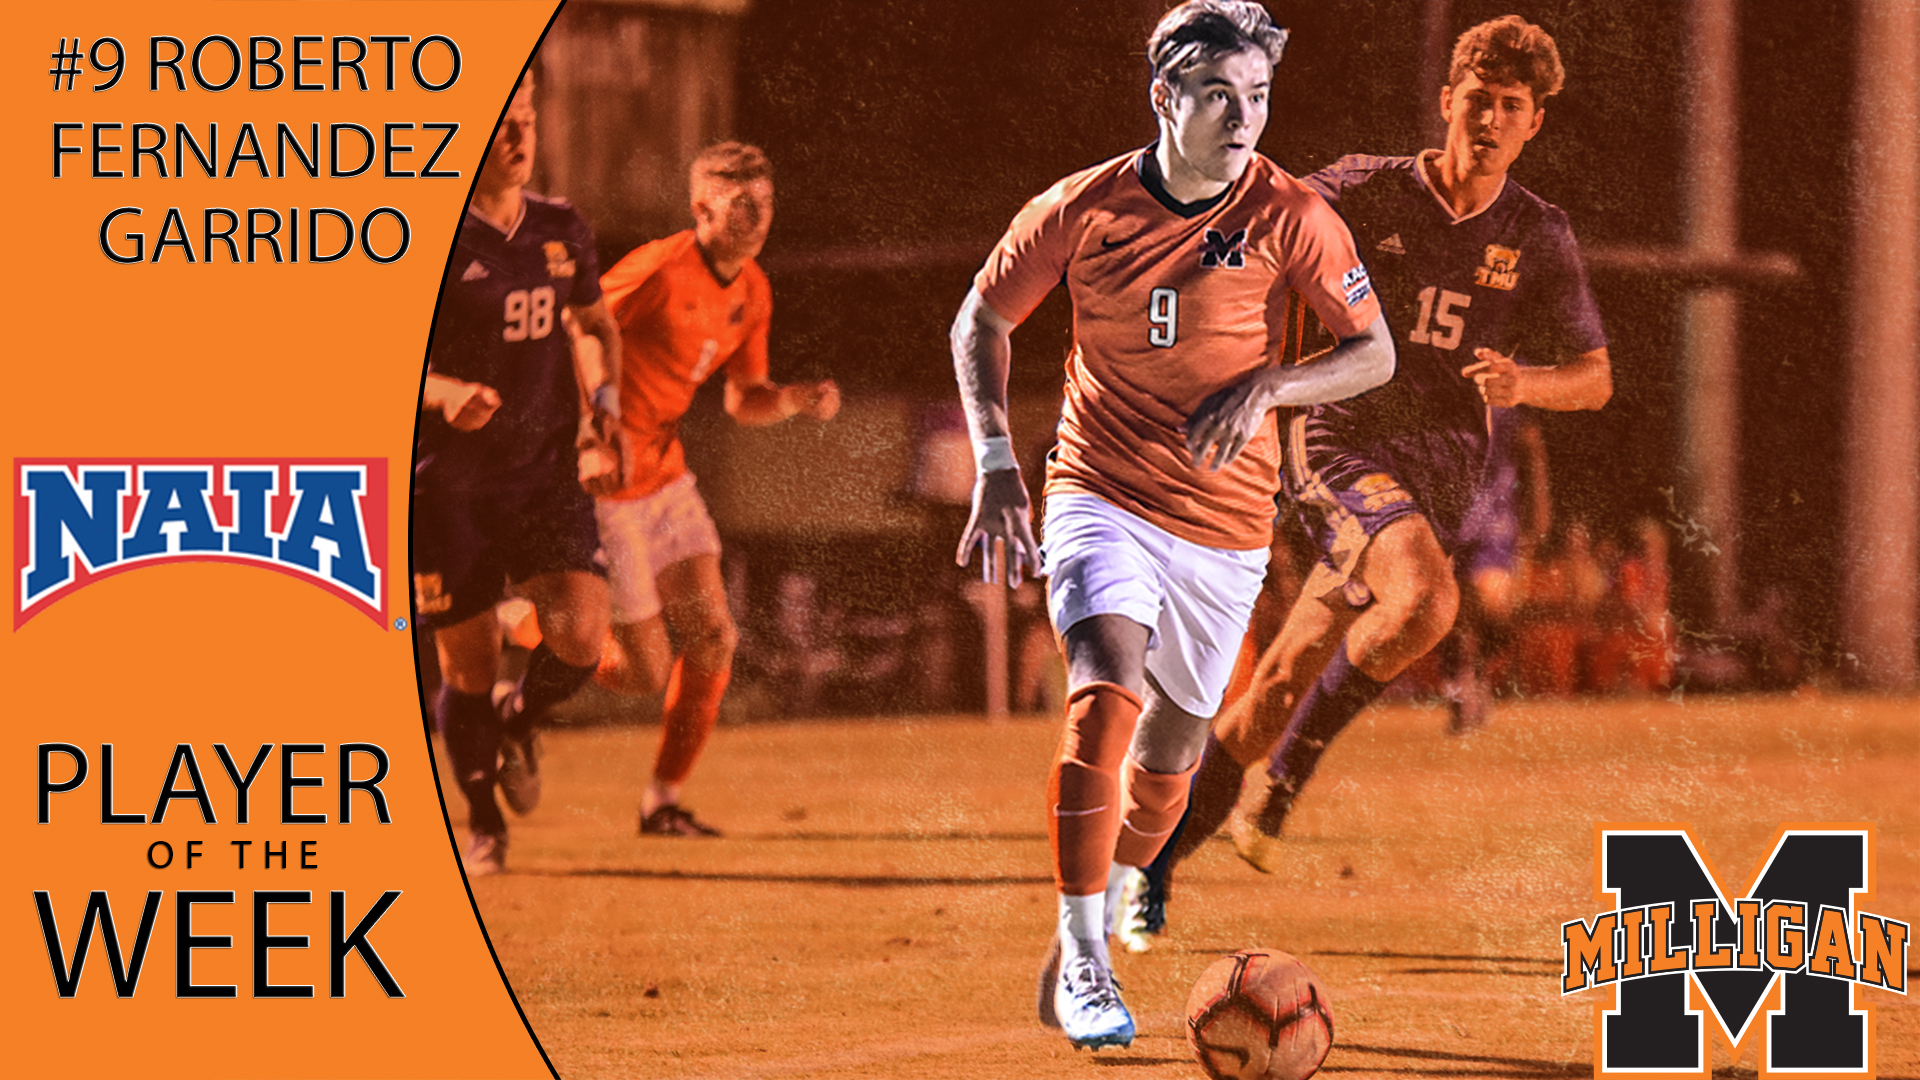 Garrido wins NAIA player of the week